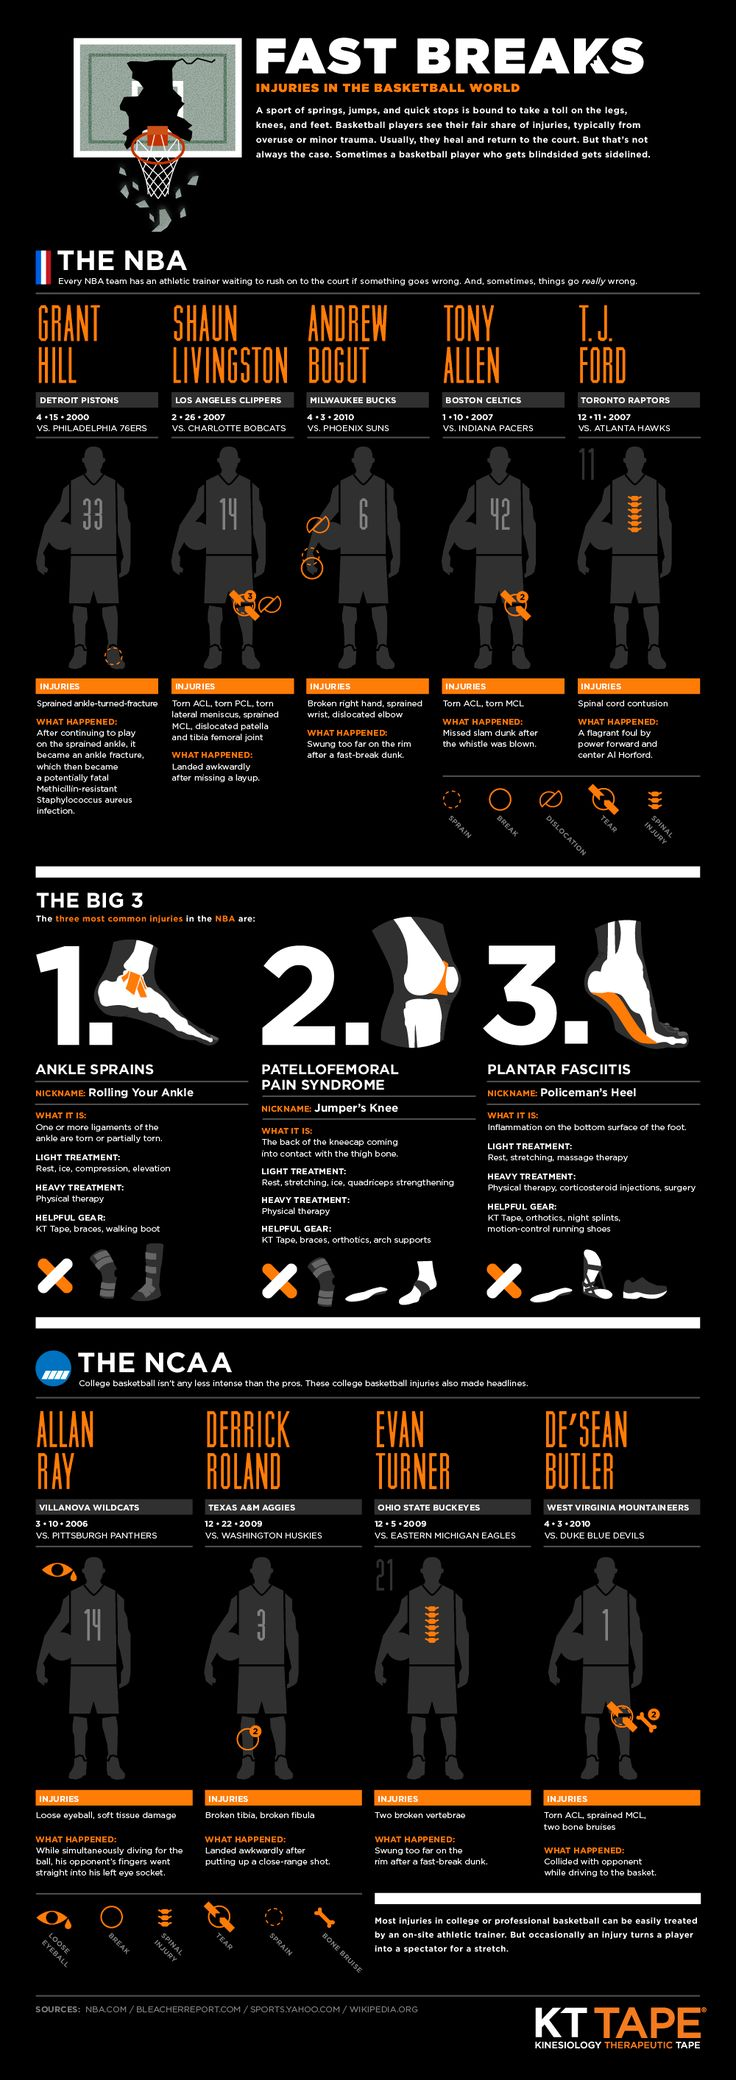 Fast Breaks: Injuries In The Basketball World [Infographic] | KT Tape